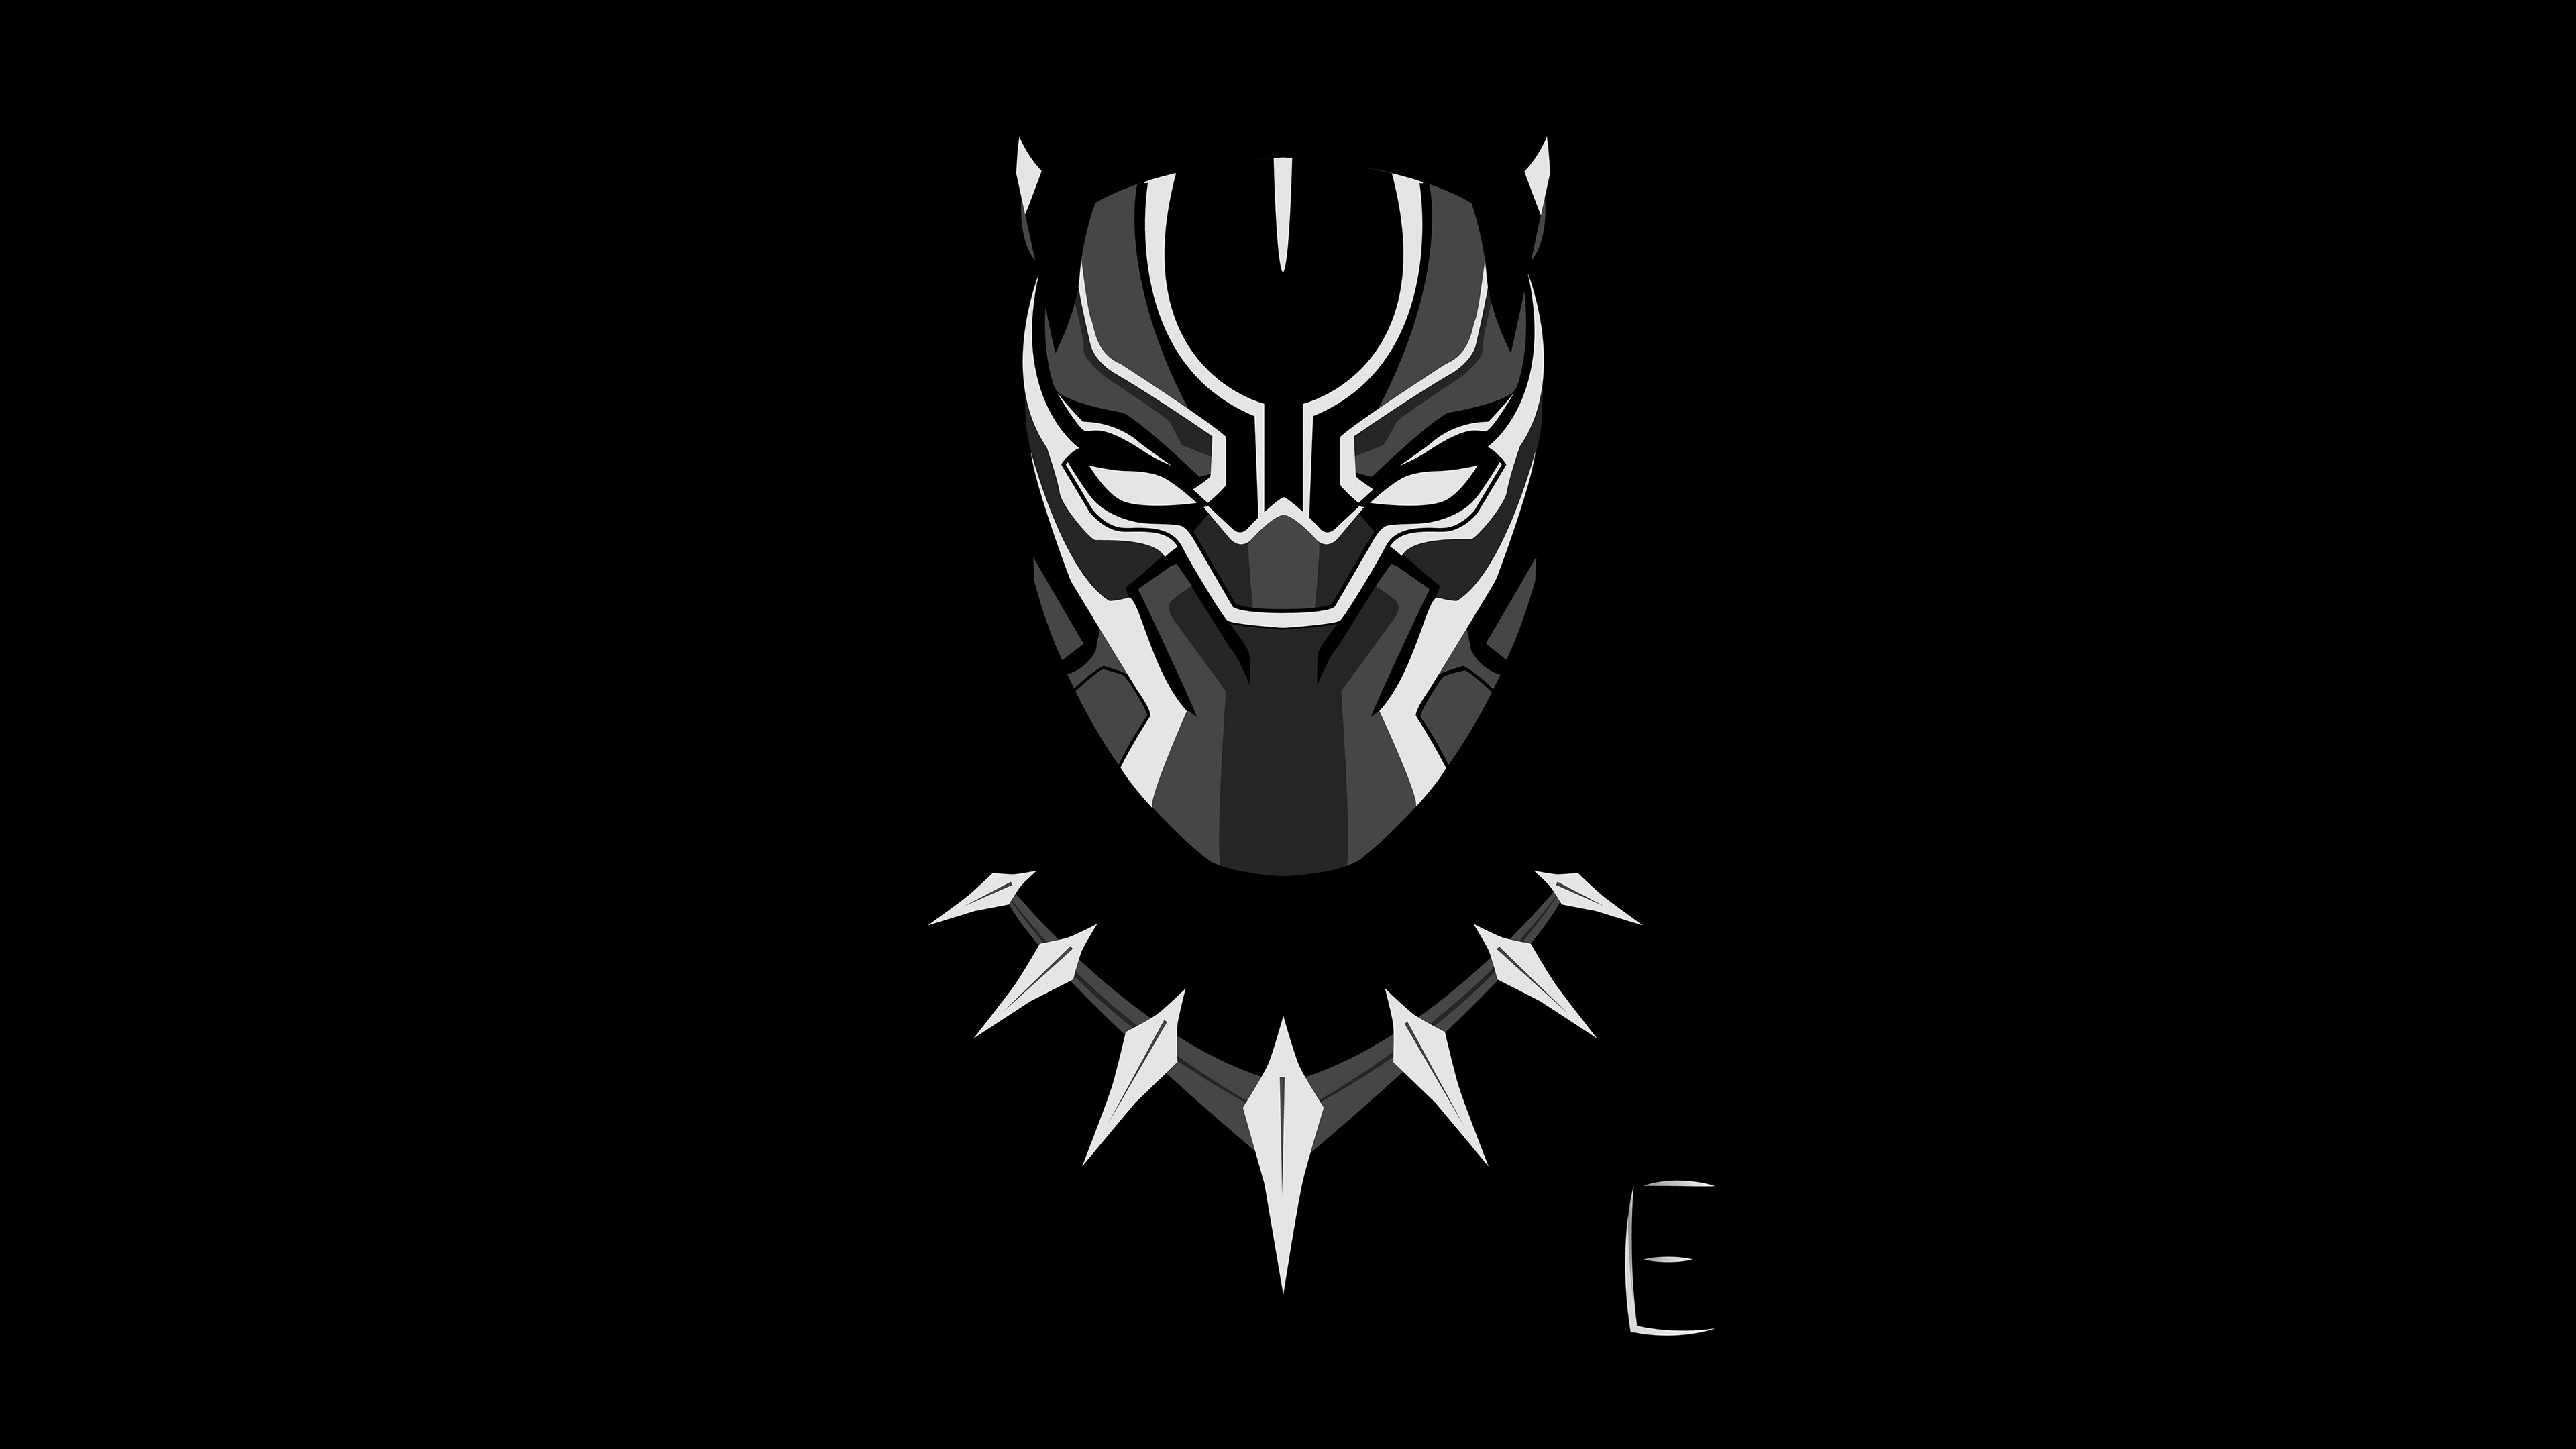 Black Panther Minimalism 4k Hd Artist 4k Wallpapers Images Backgrounds Photos And Pictures